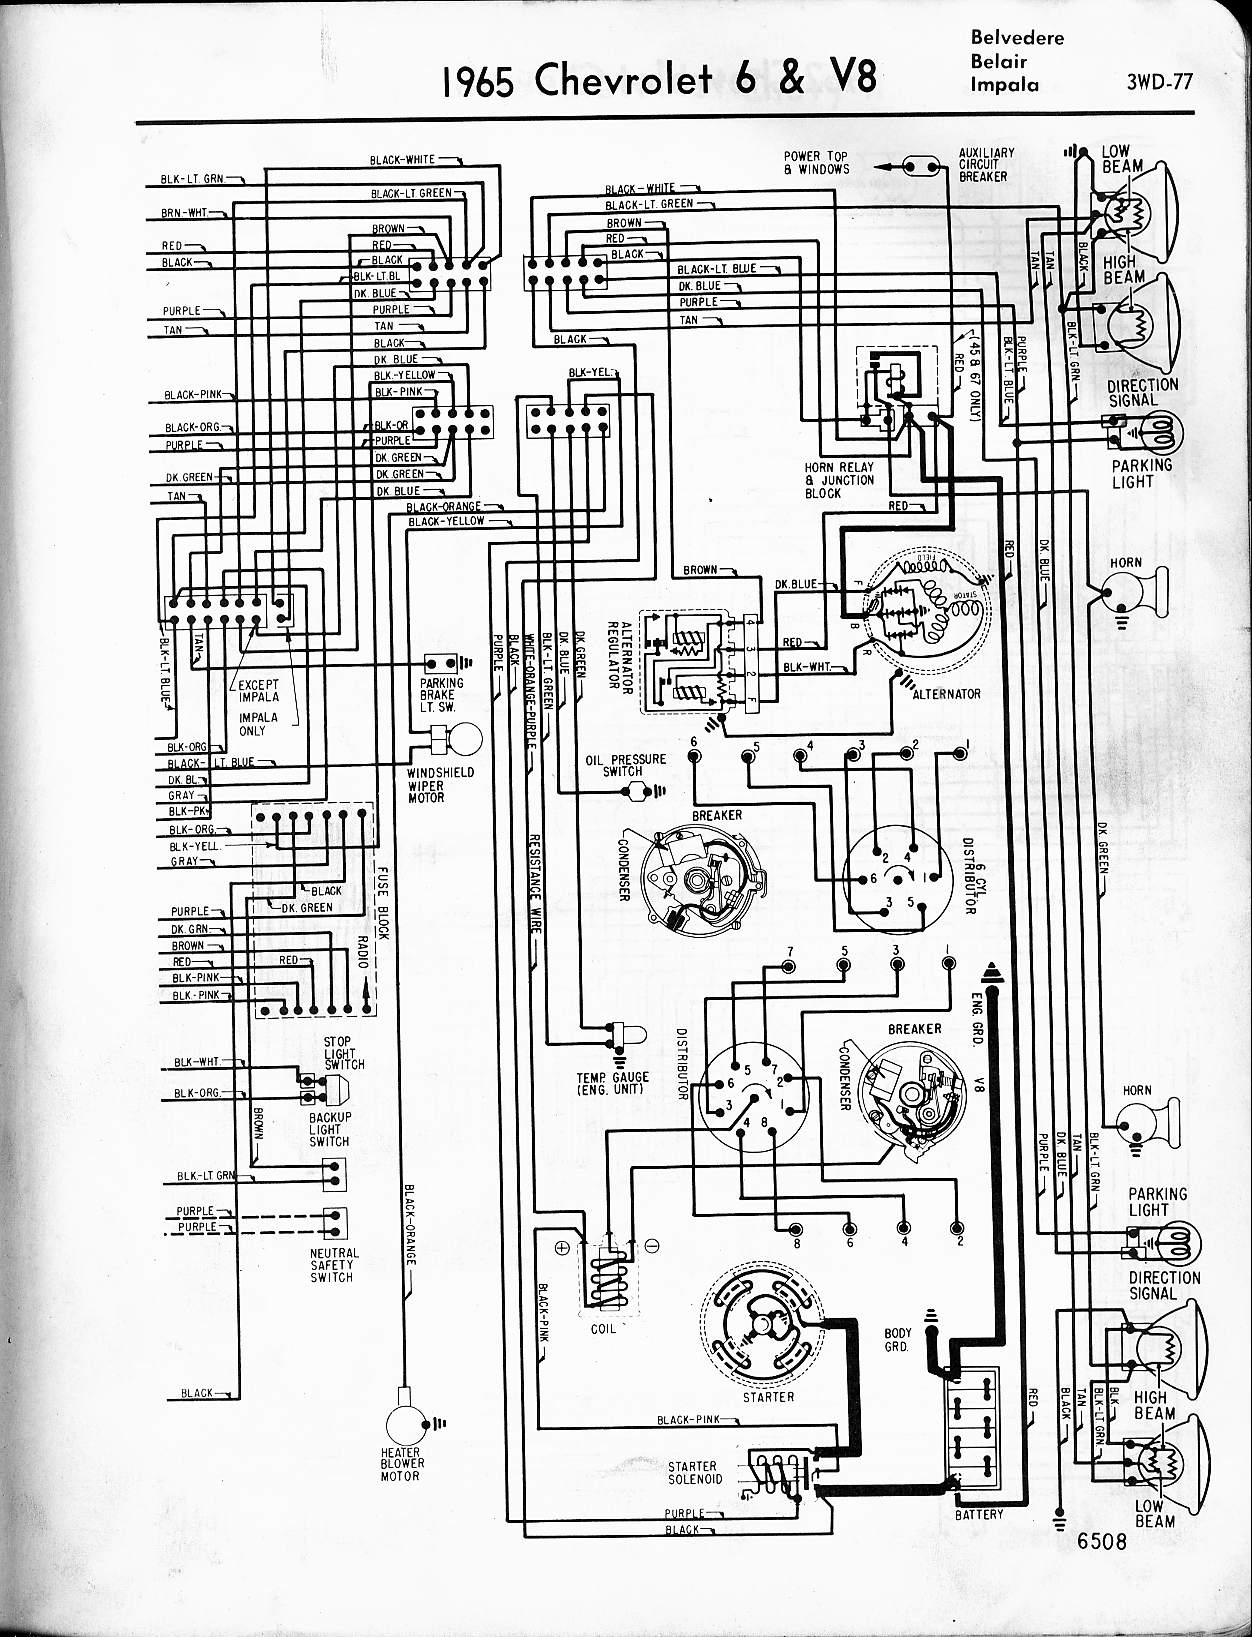 1965 Impalla Wiring Diagram: Figure A Figure B. 1967 Chevy-AC-Assembly ...